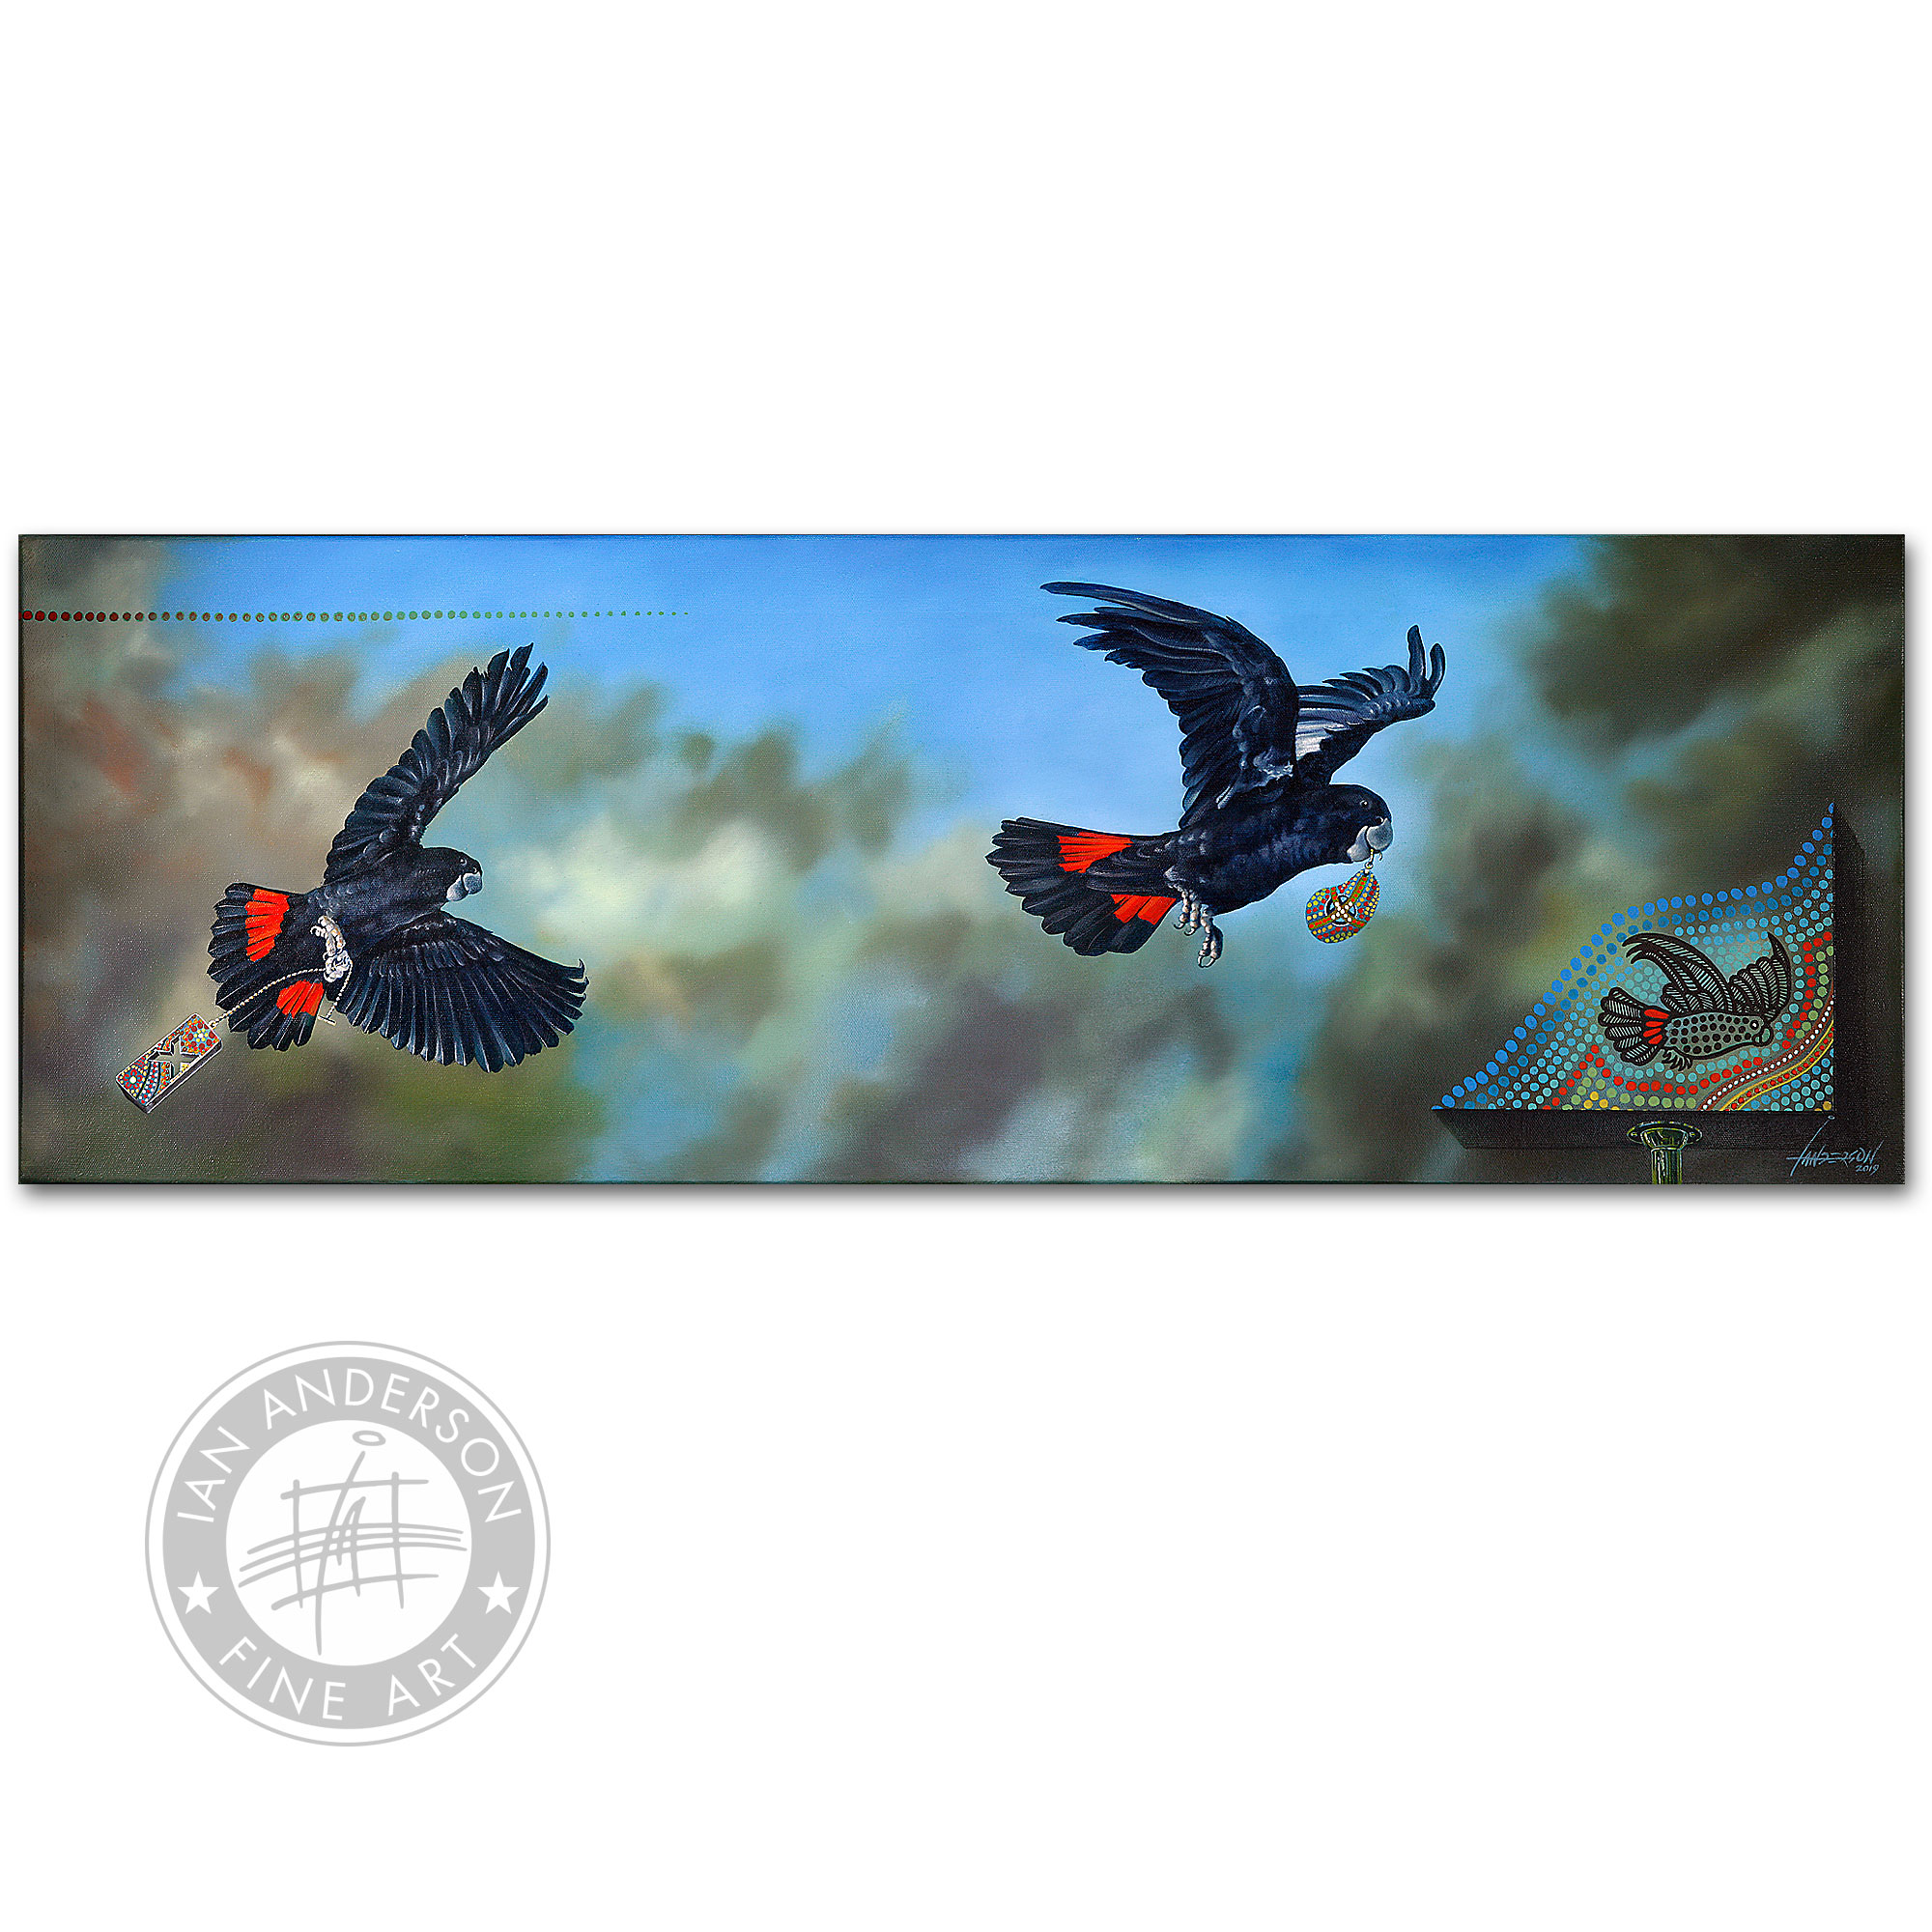 Red Tail Black Cockatoo - Original Oil Painting on gesso primed canvas